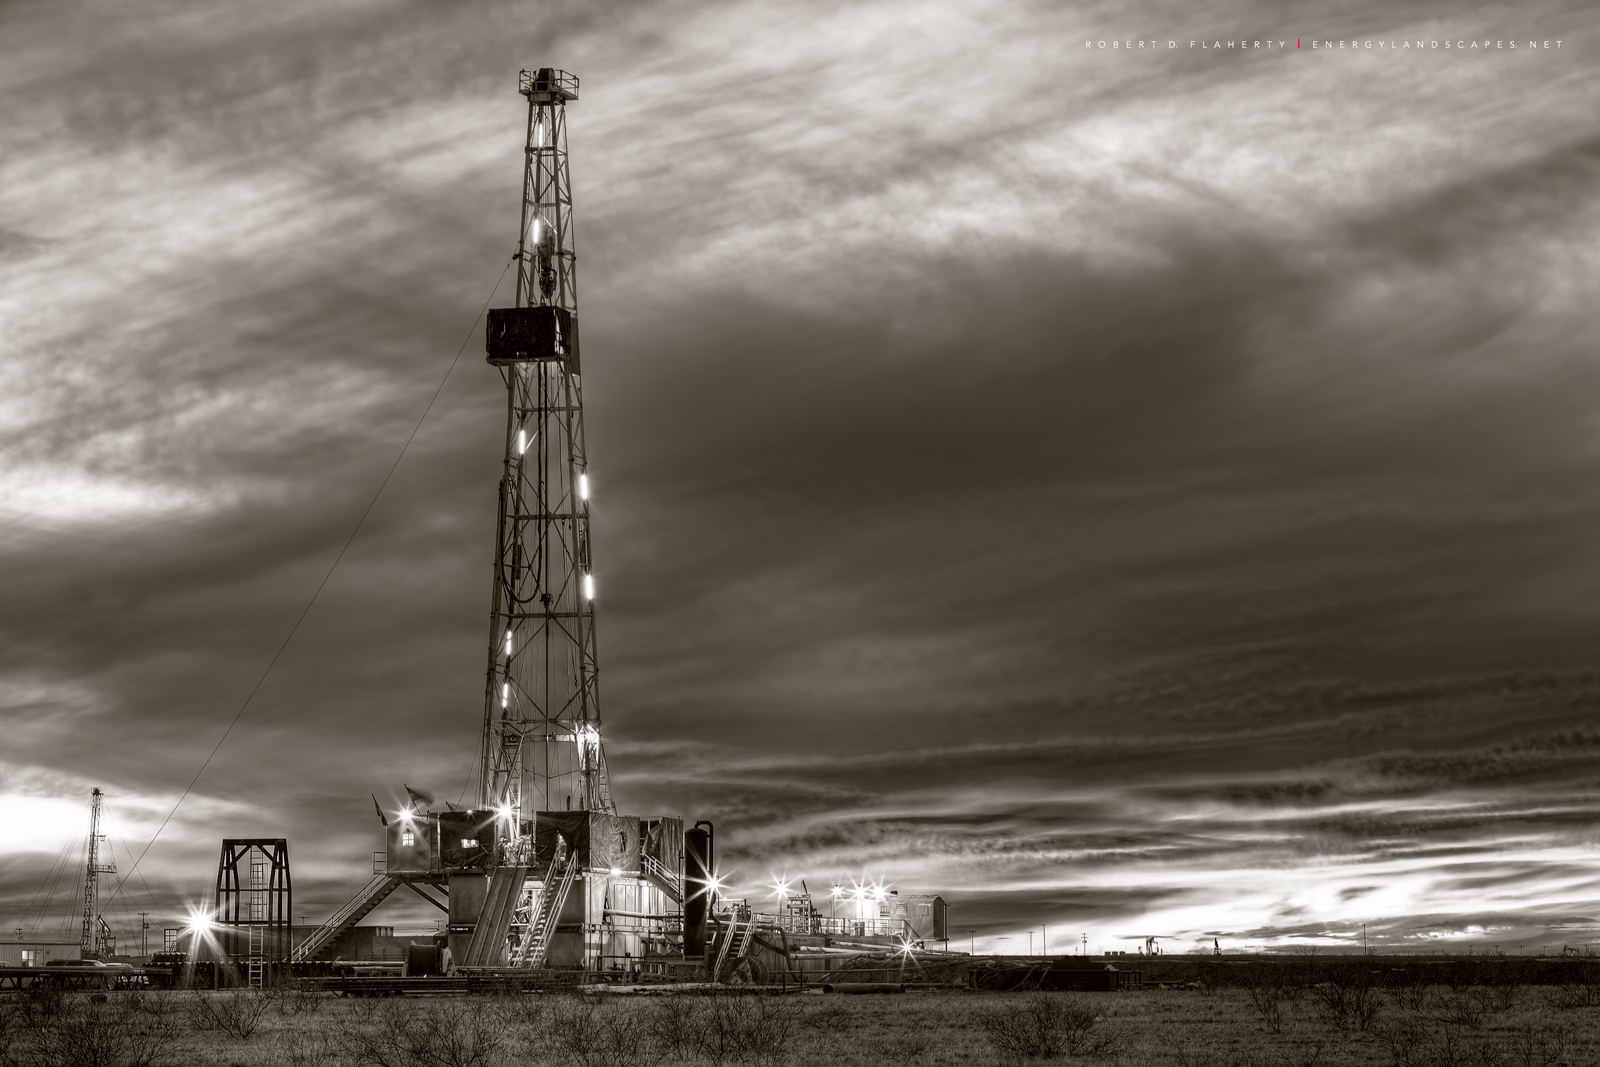 Drilling rig, Sepia, winter, sunset, Midland Texas, oil & gas photography, oilfield art, photo